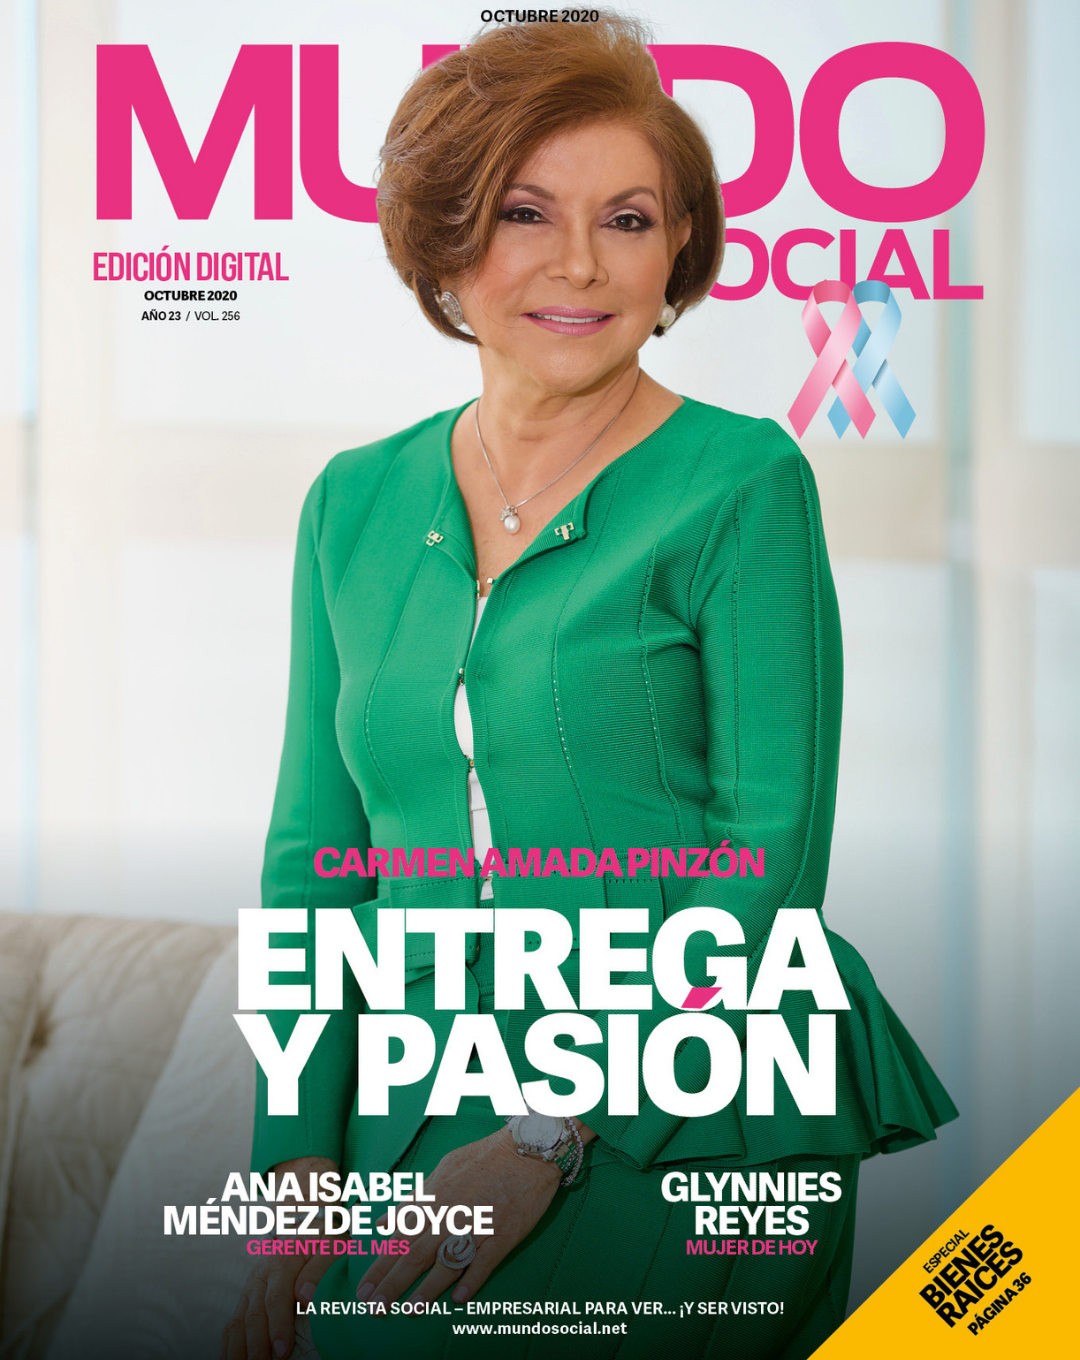 revista digital mundo social